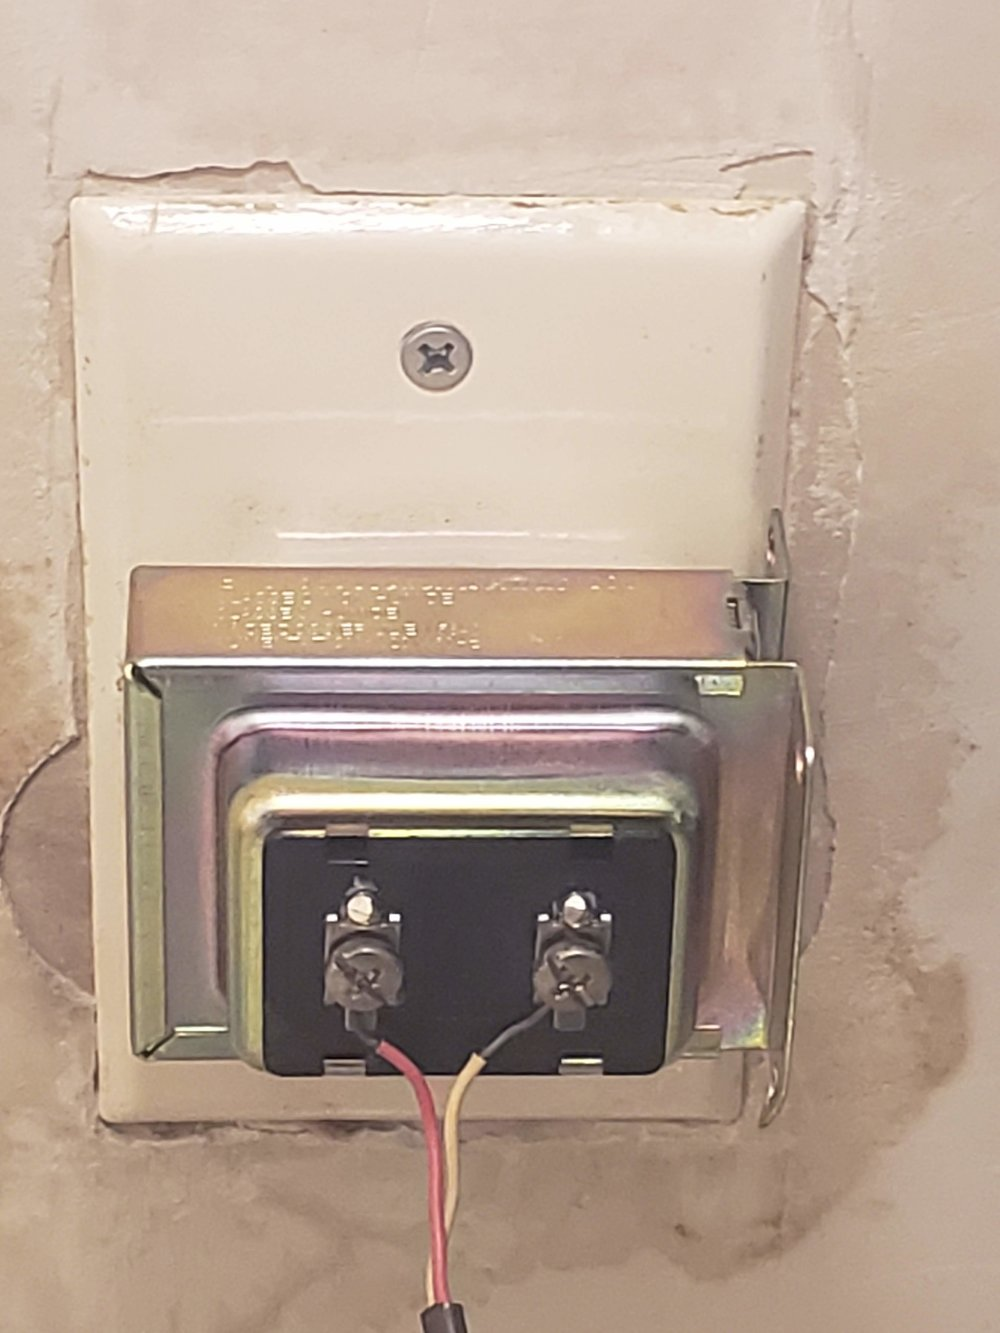 Doorbell Transformer located near HVAC in utility room connected to doorbell.